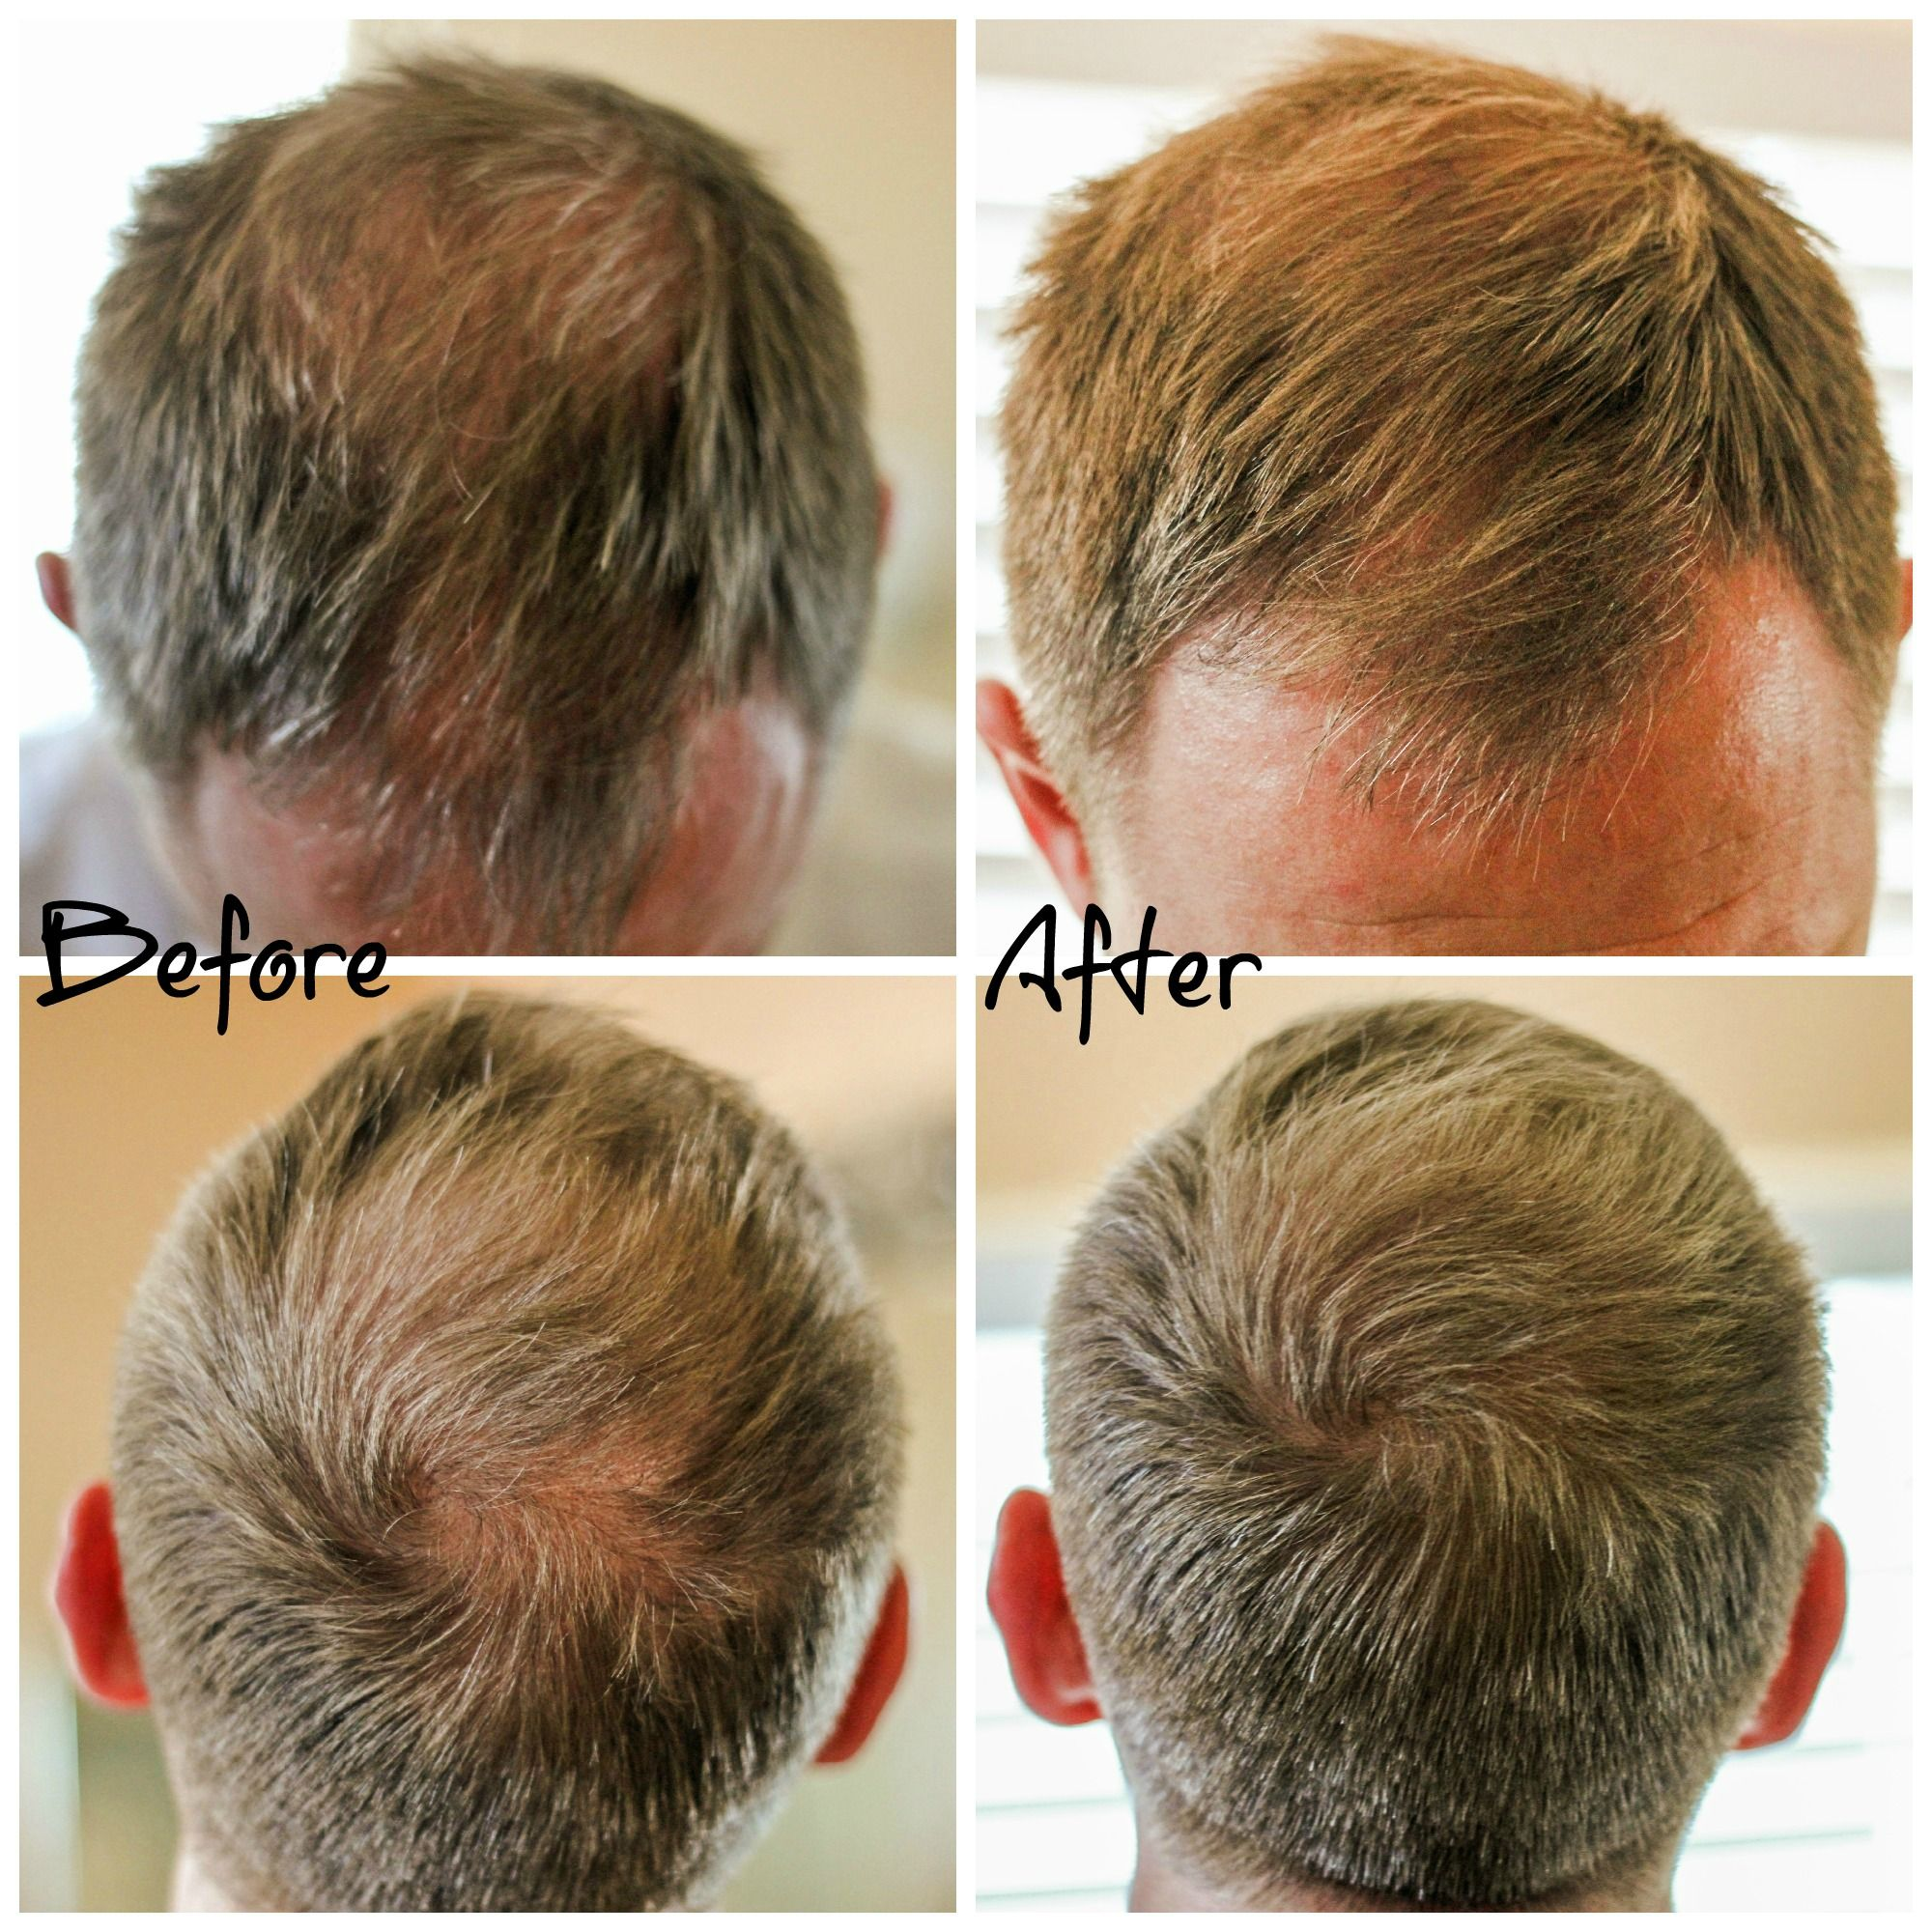 Hair Thinning And Hair Loss Whats A Man To Do Real Mommy Stuff